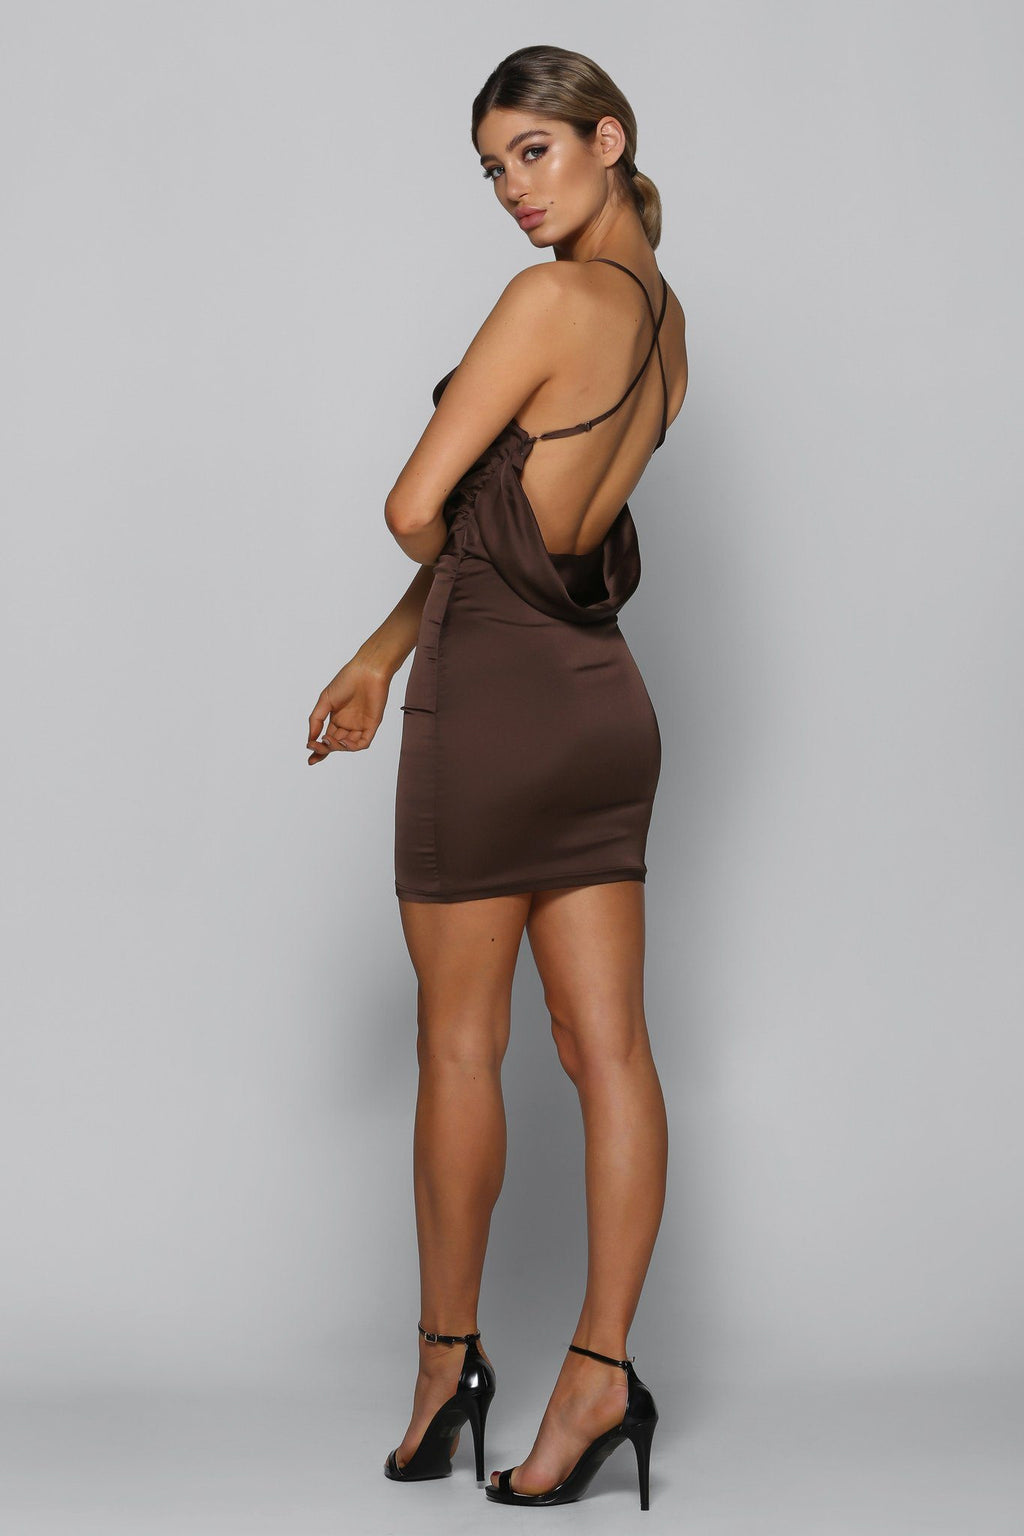 Bad Influence Satin Dress in Brown - Bad AF Fashion